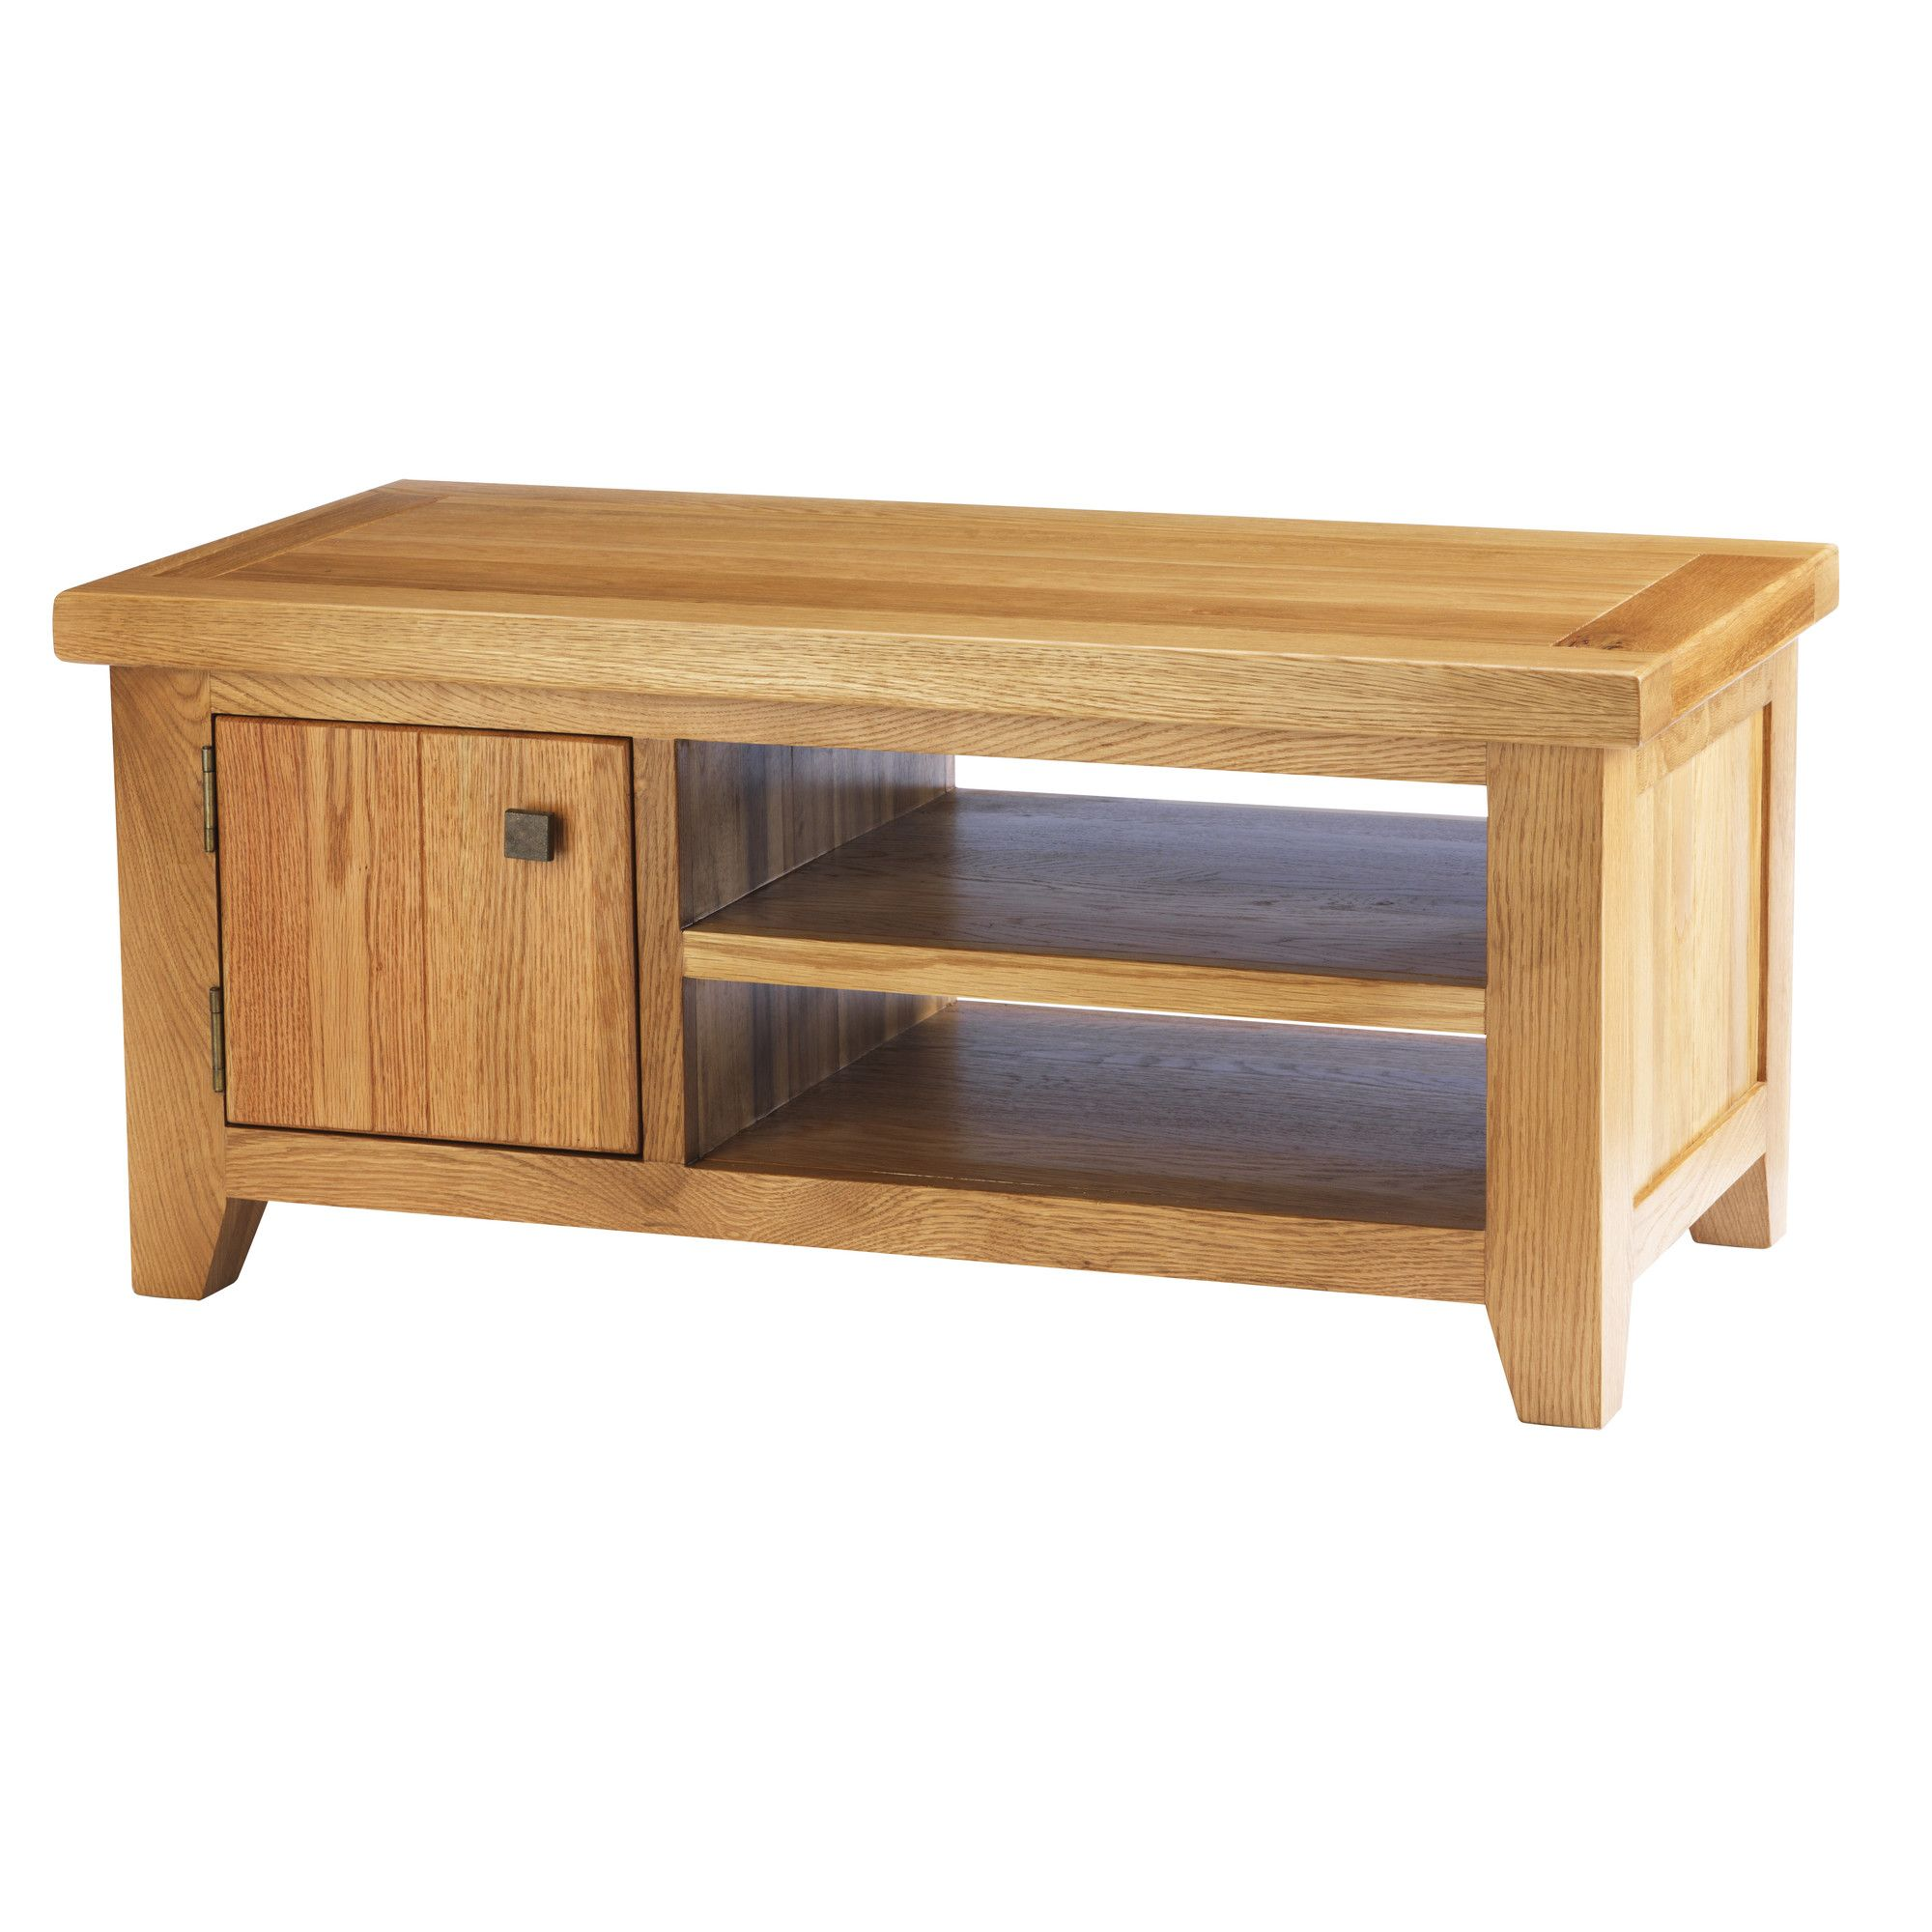 Thorndon Taunton Solid Wooden Low TV Stand for LCDs at Tesco Direct